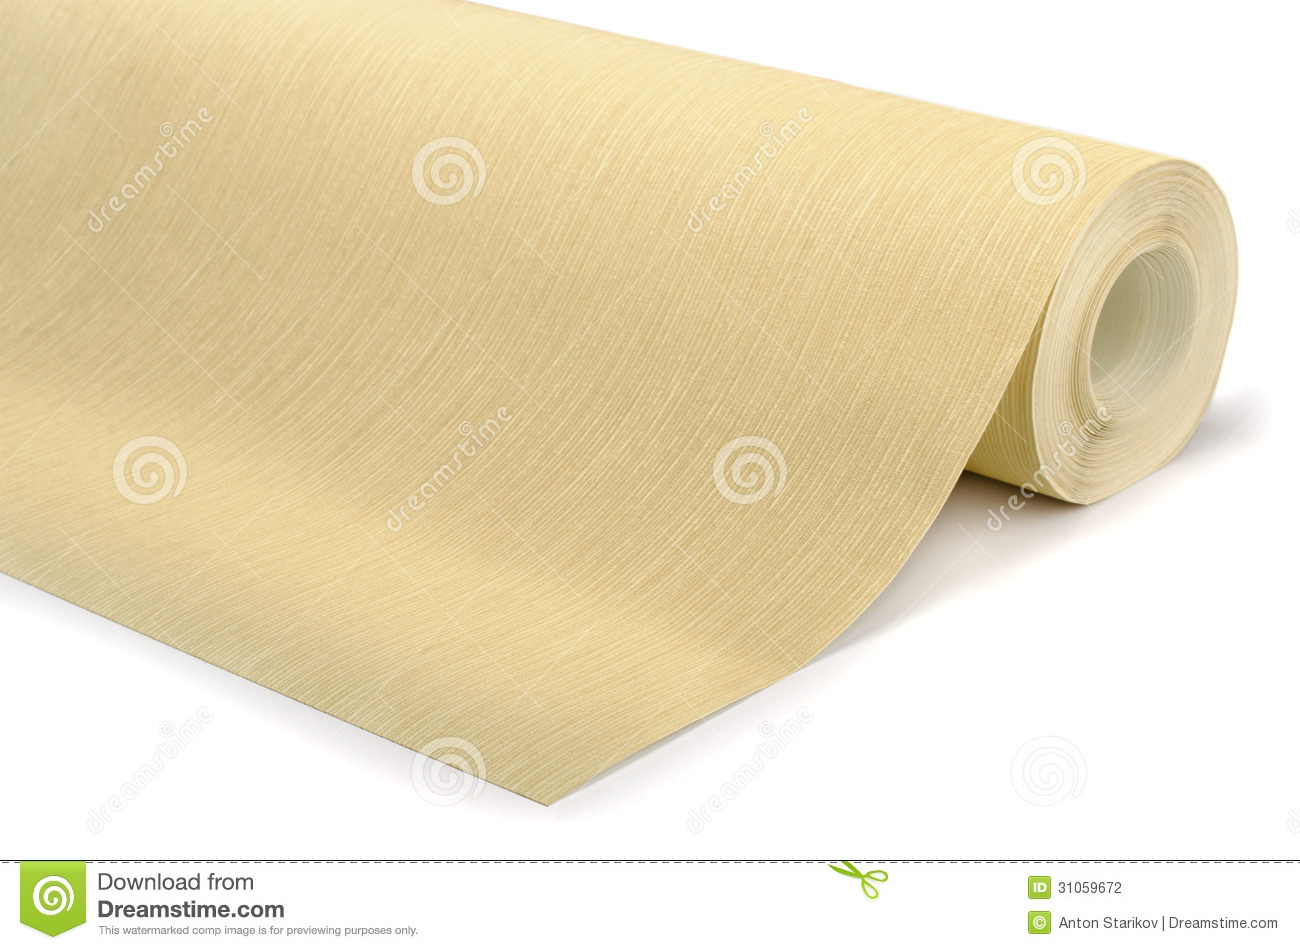 Roll of wallpaper stock photography image 31059672 for Wallpaper rolls clearance